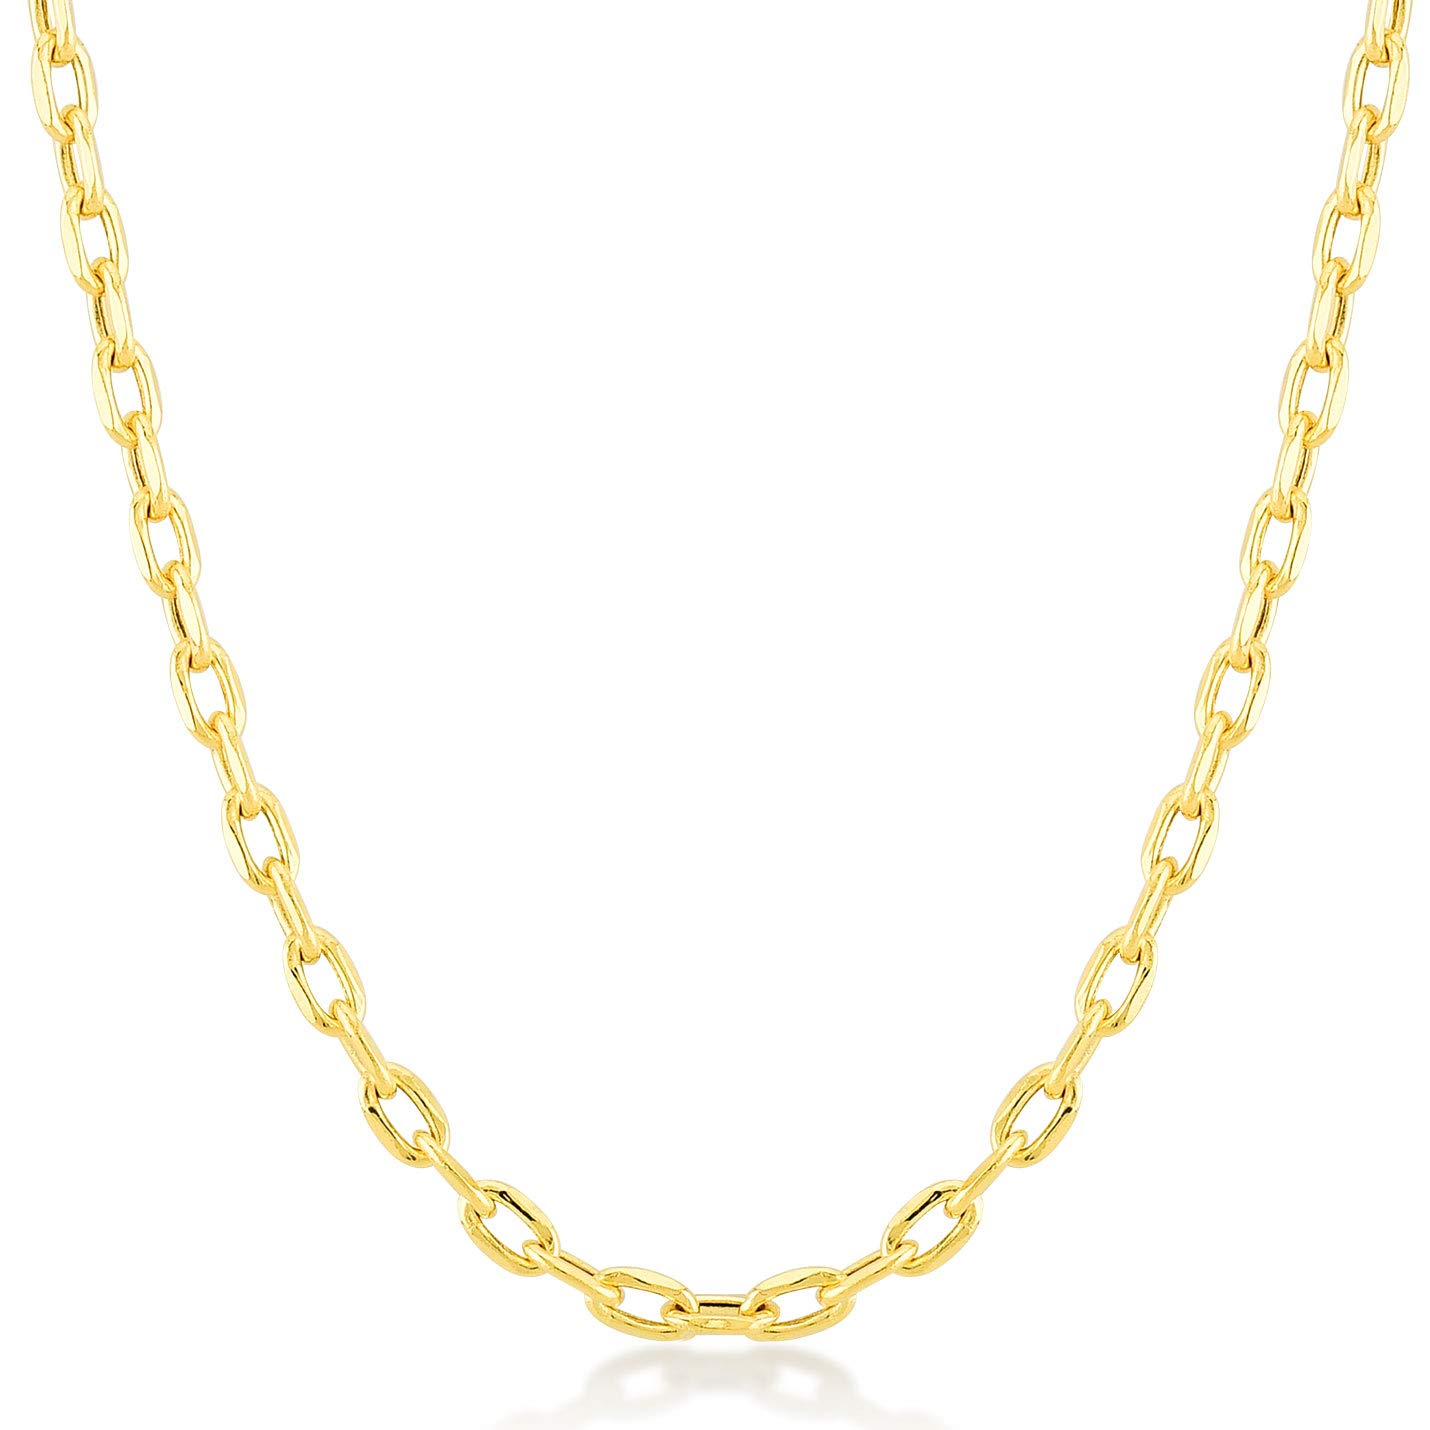 Gelin 14k Real Gold 1.0 mm Forzentina Cable Chain for Women and Men, Fine Jewellery Birthday Gift for Her/Him, 18 inch